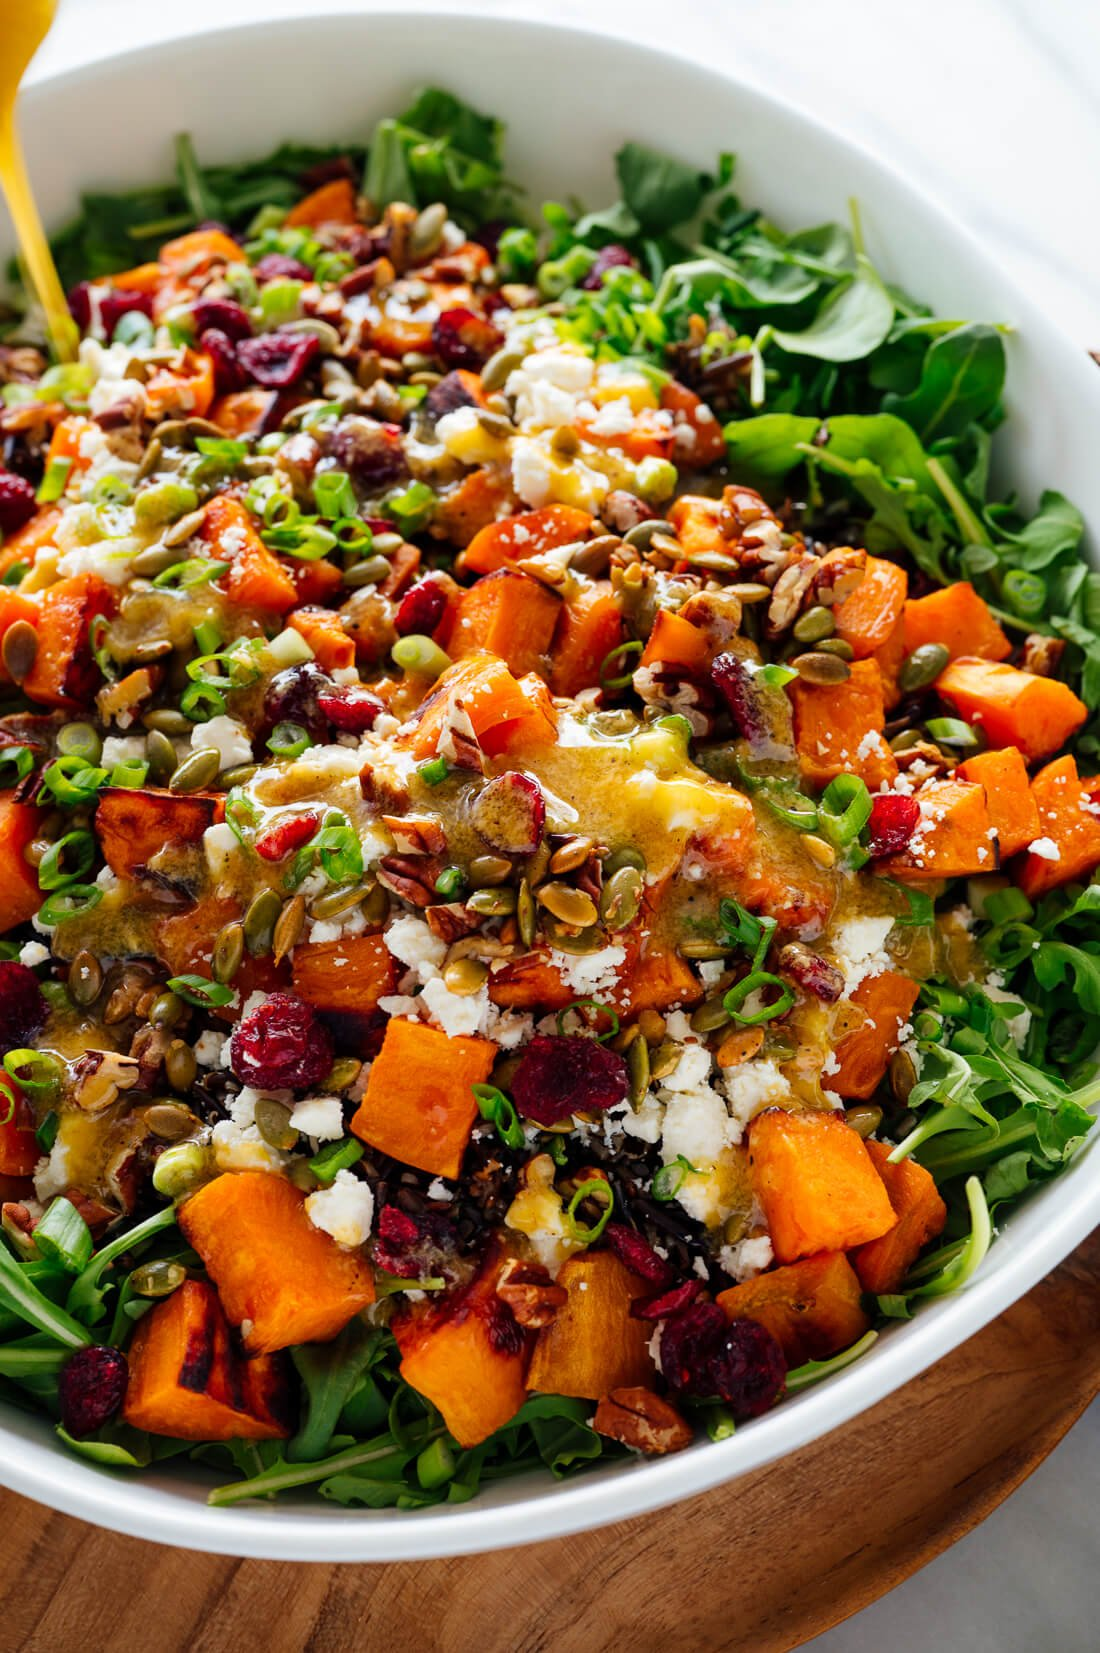 Hearty Sweet Potato, Arugula & Wild Rice Salad with Ginger